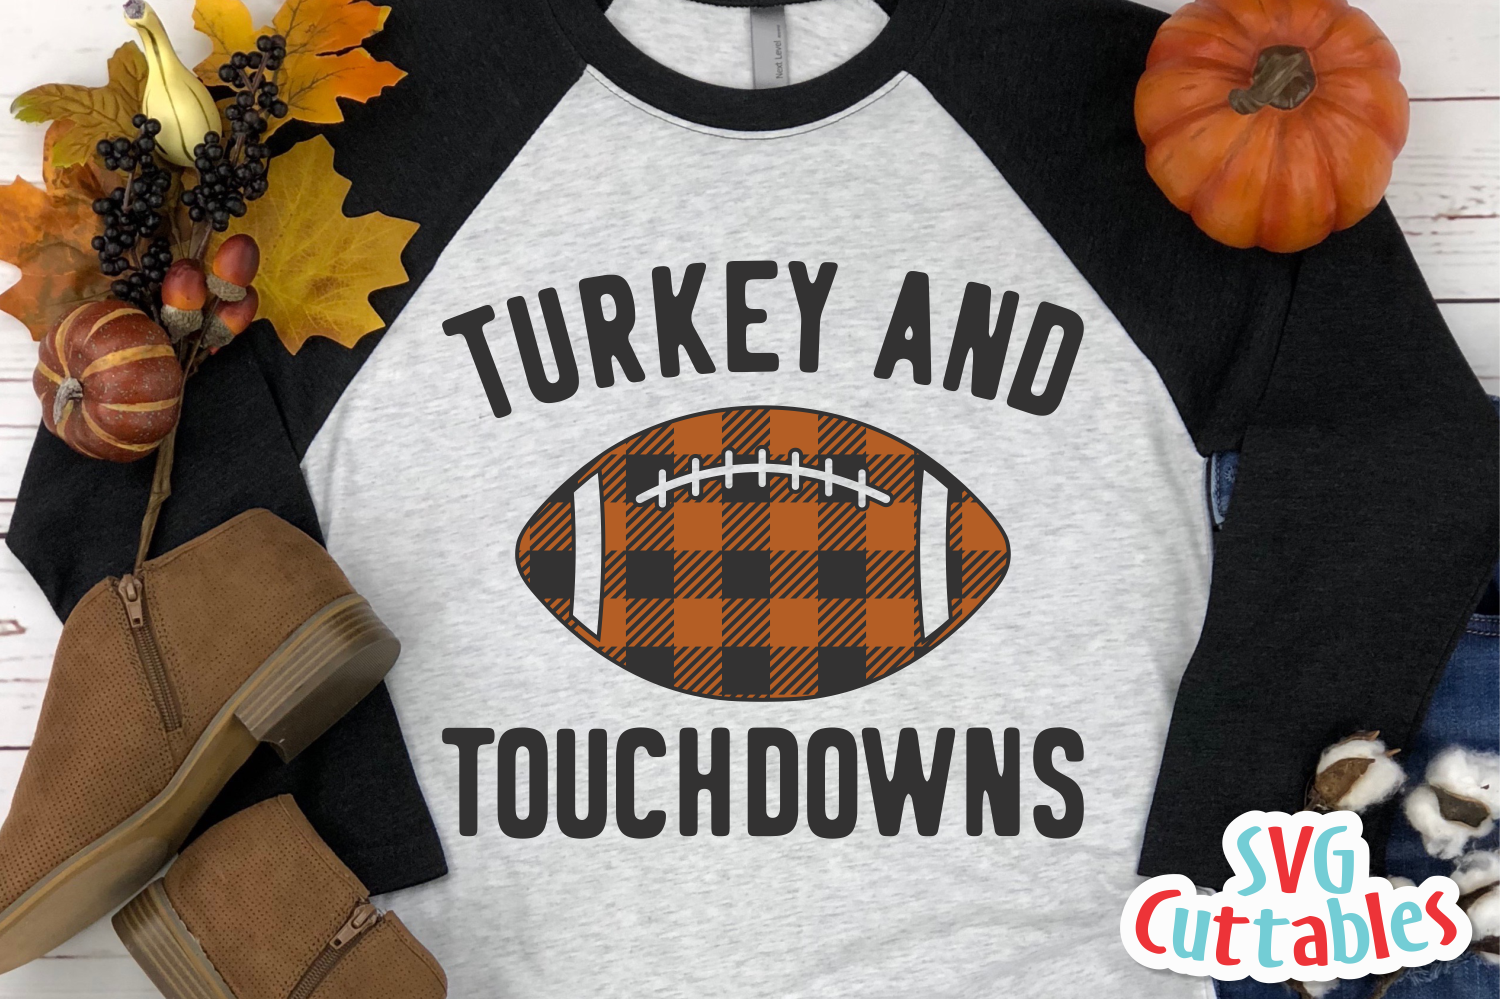 Turkey and Touchdowns | Thanksgiving Cut File example image 1